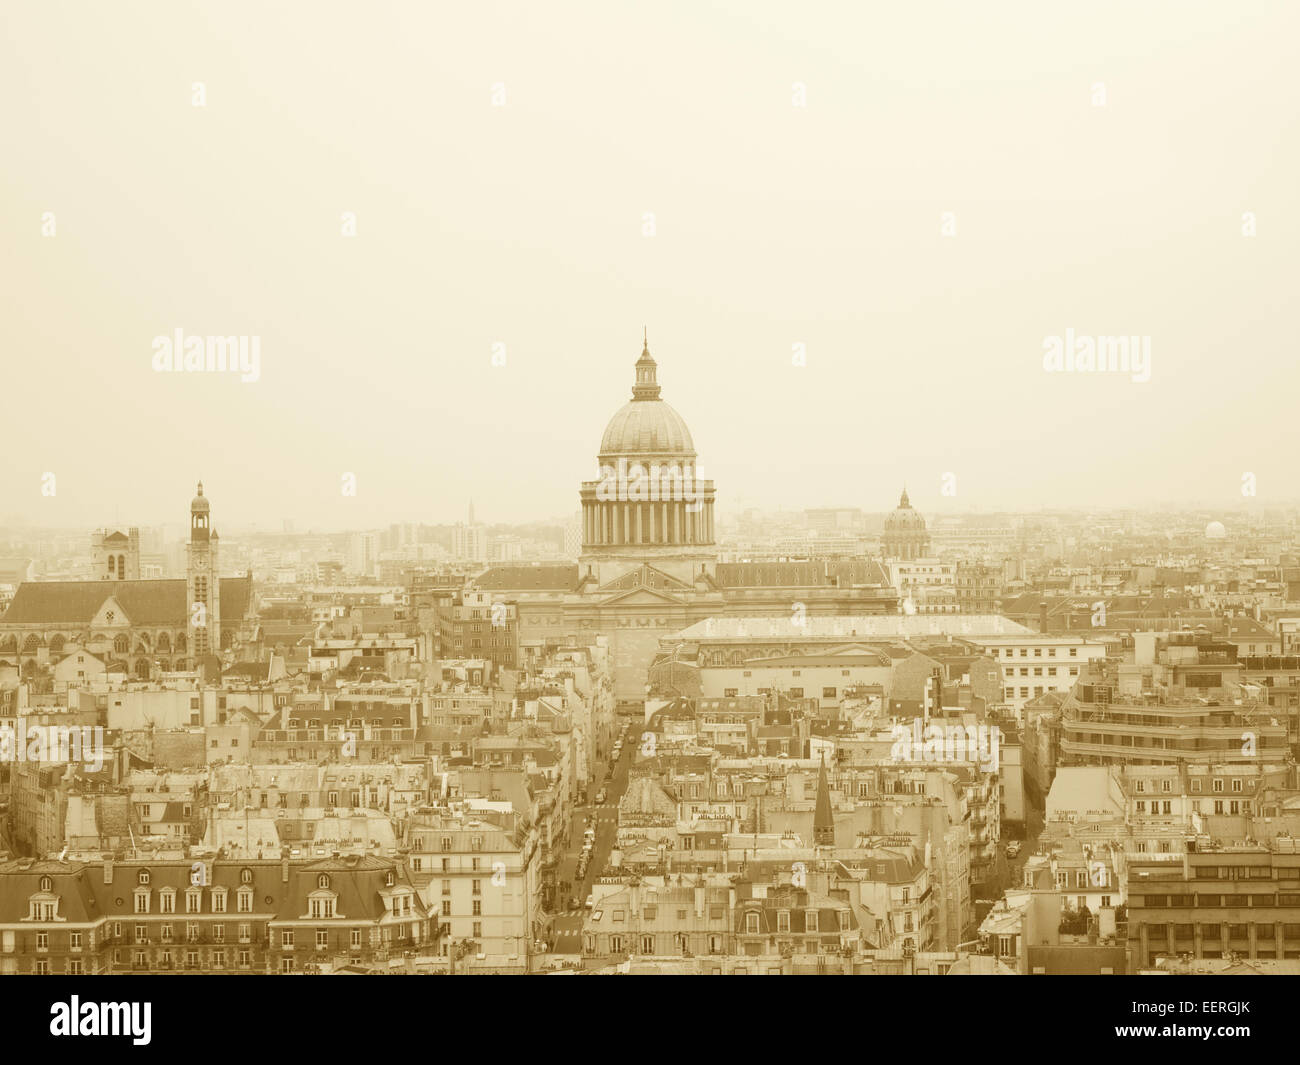 Paris skyline with the dome of the Hotel des Invalides - Stock Image